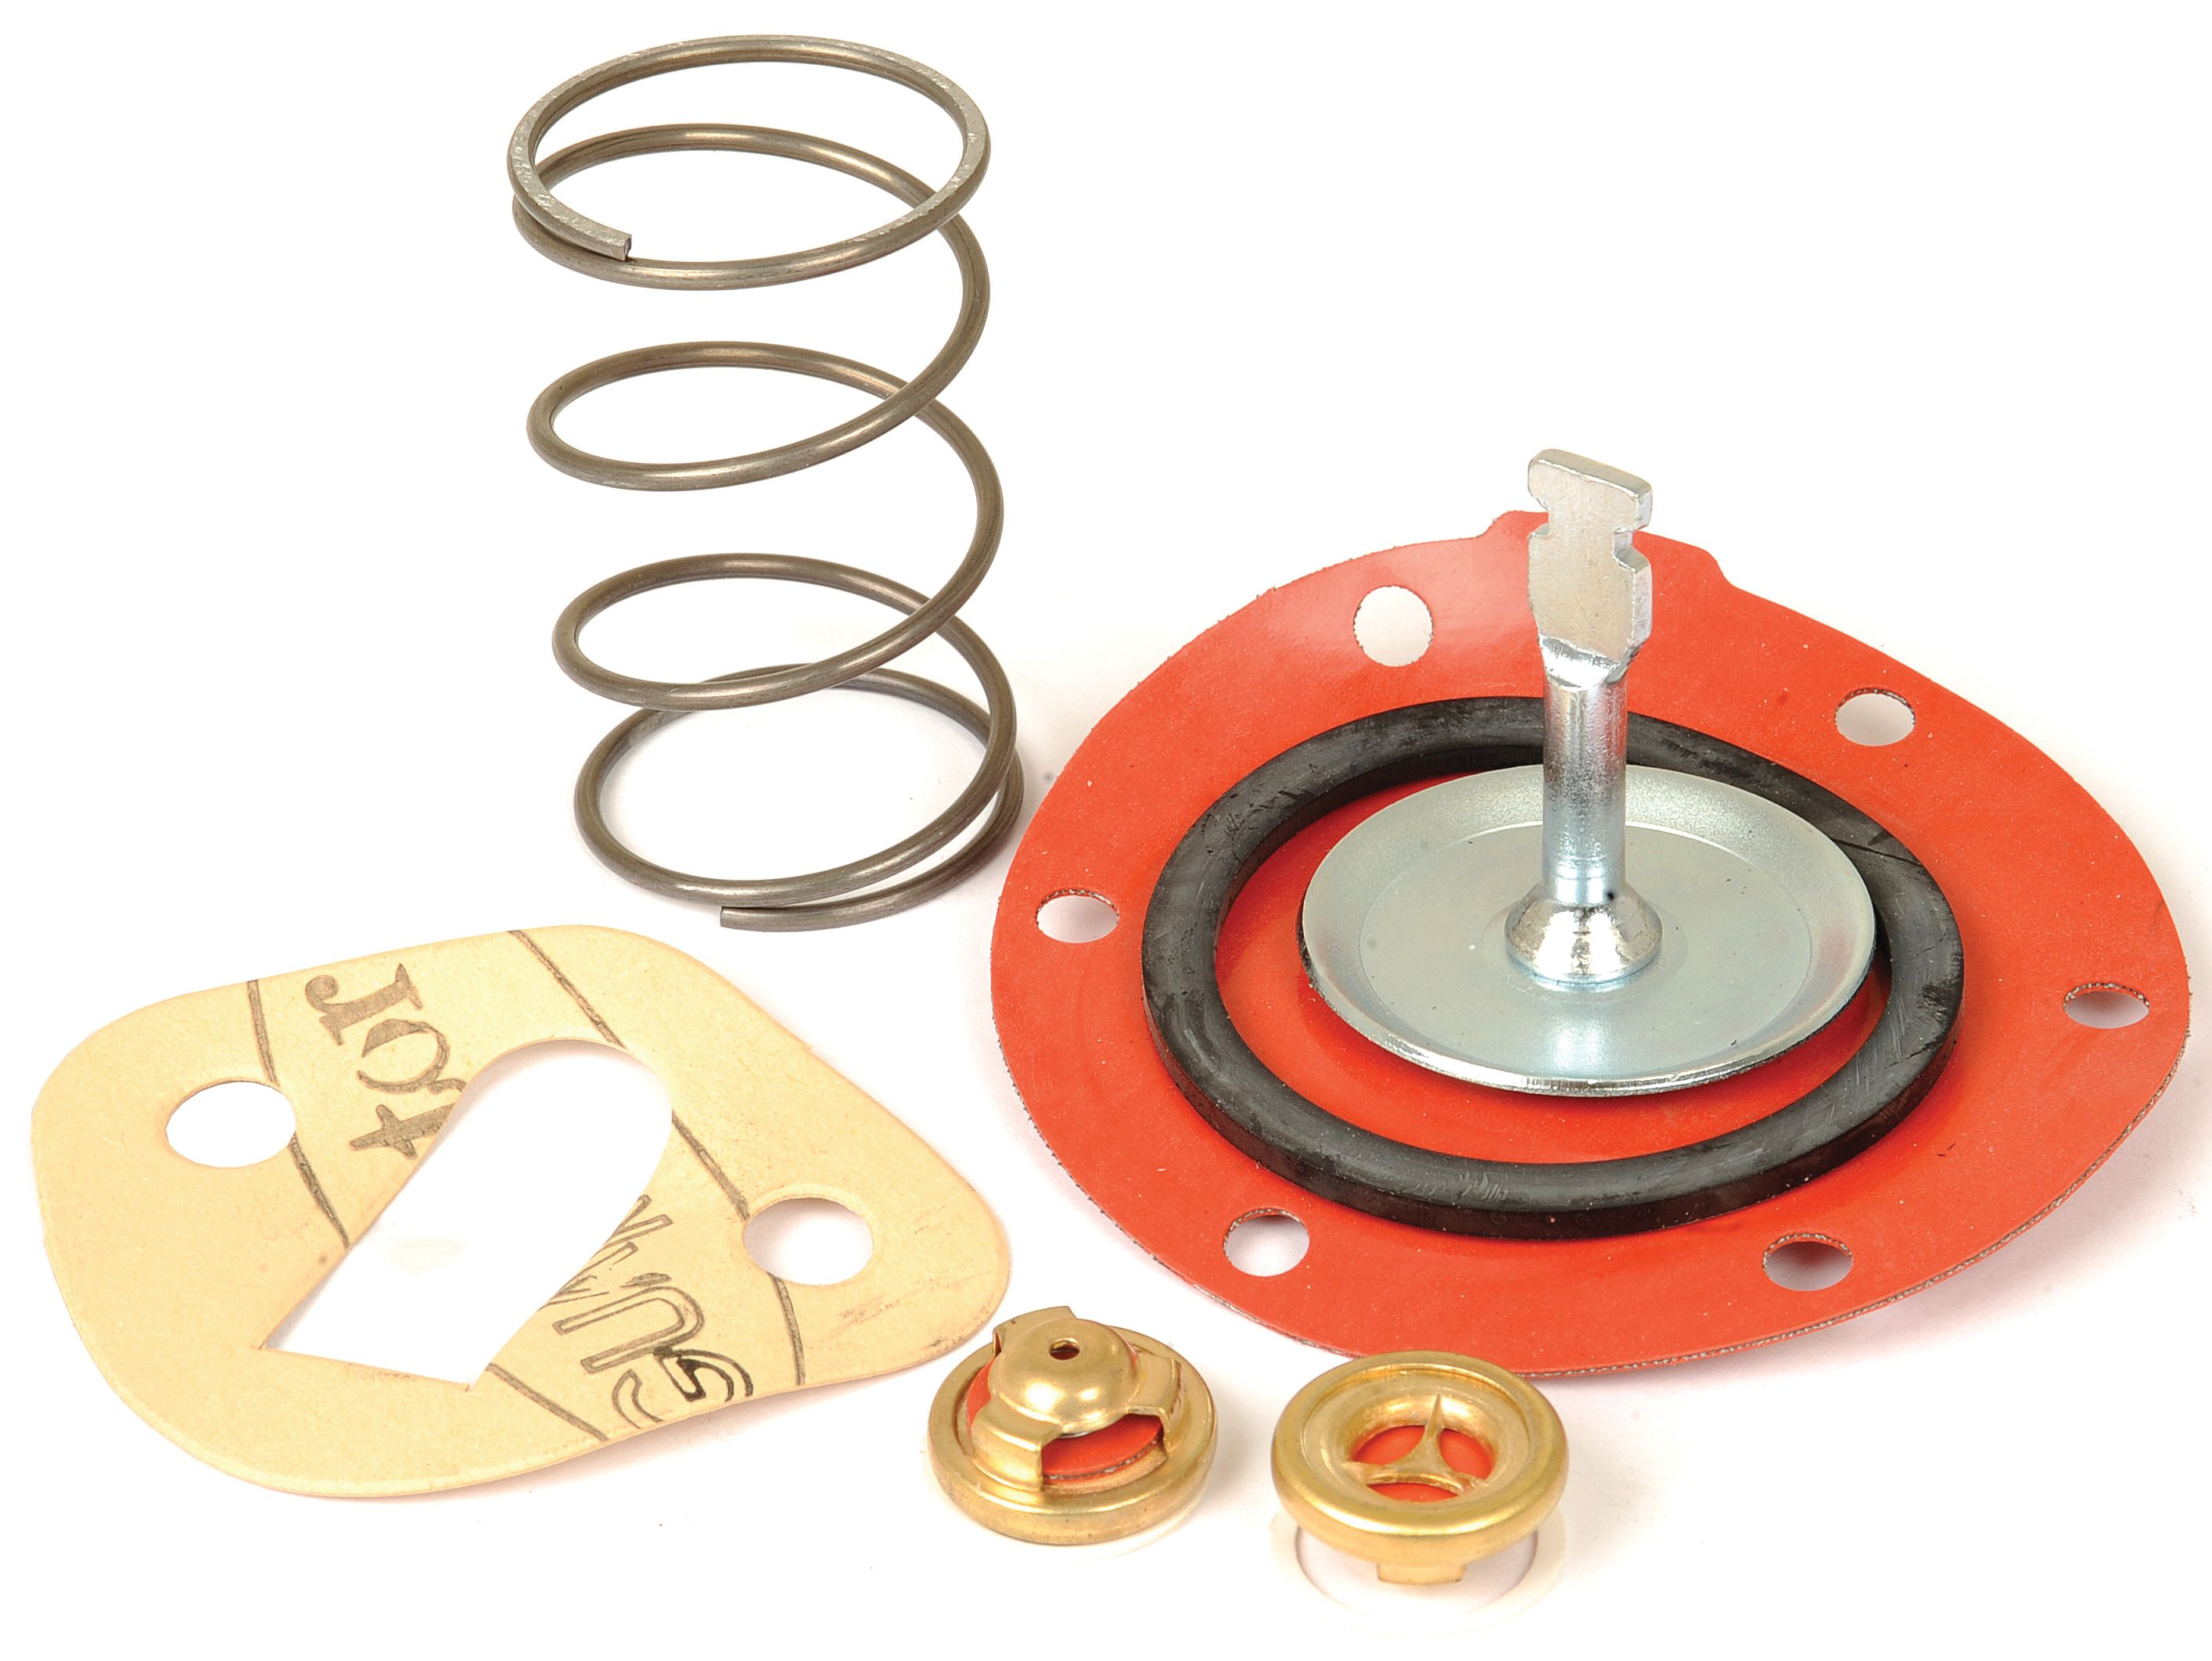 DAVID BROWN FUEL PUMP REPAIR KIT 40568